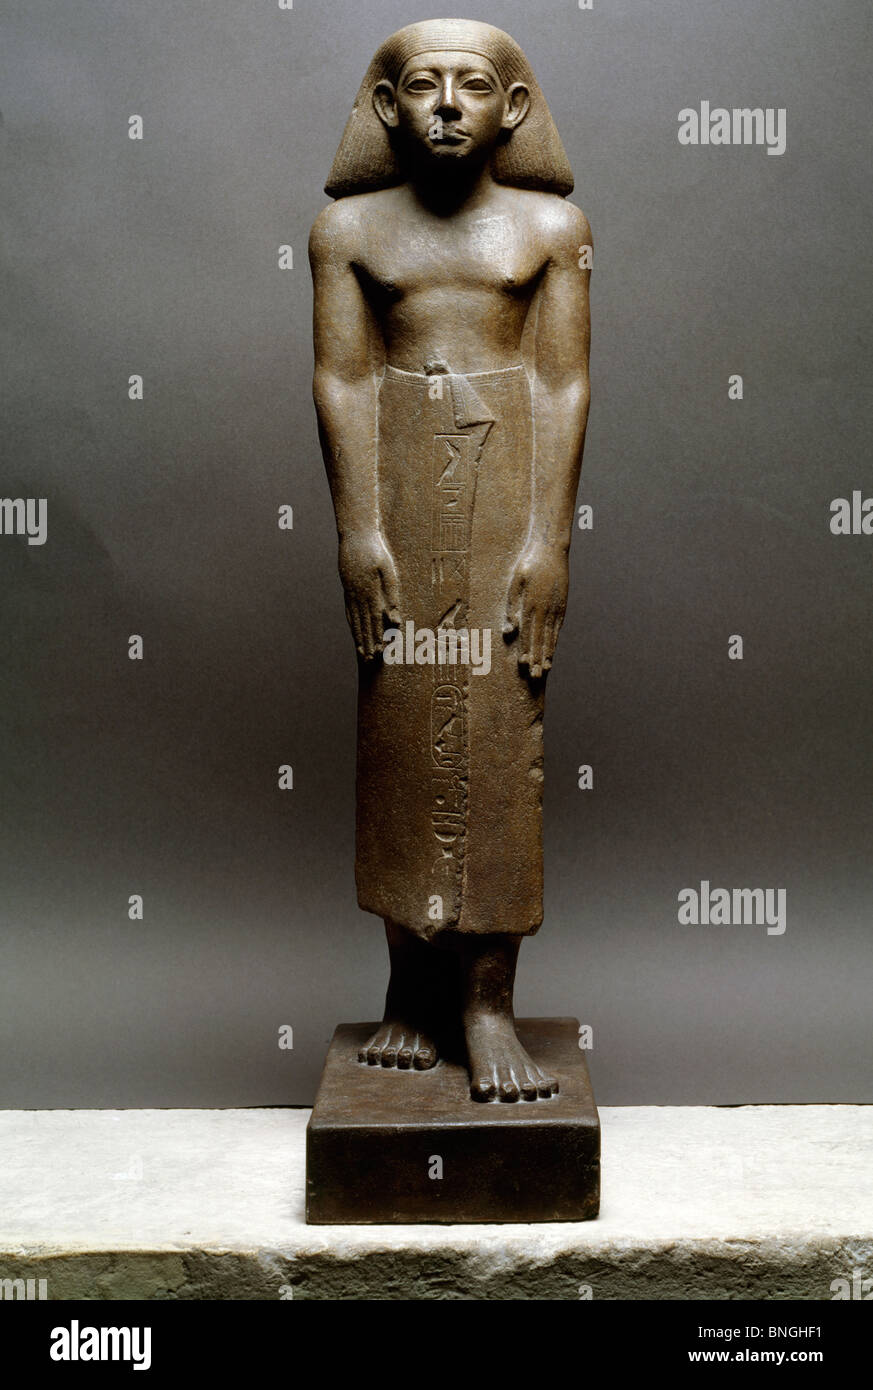 Statue of the Chief of the Prophets, France, Paris, Musee du Louvre - Stock Image